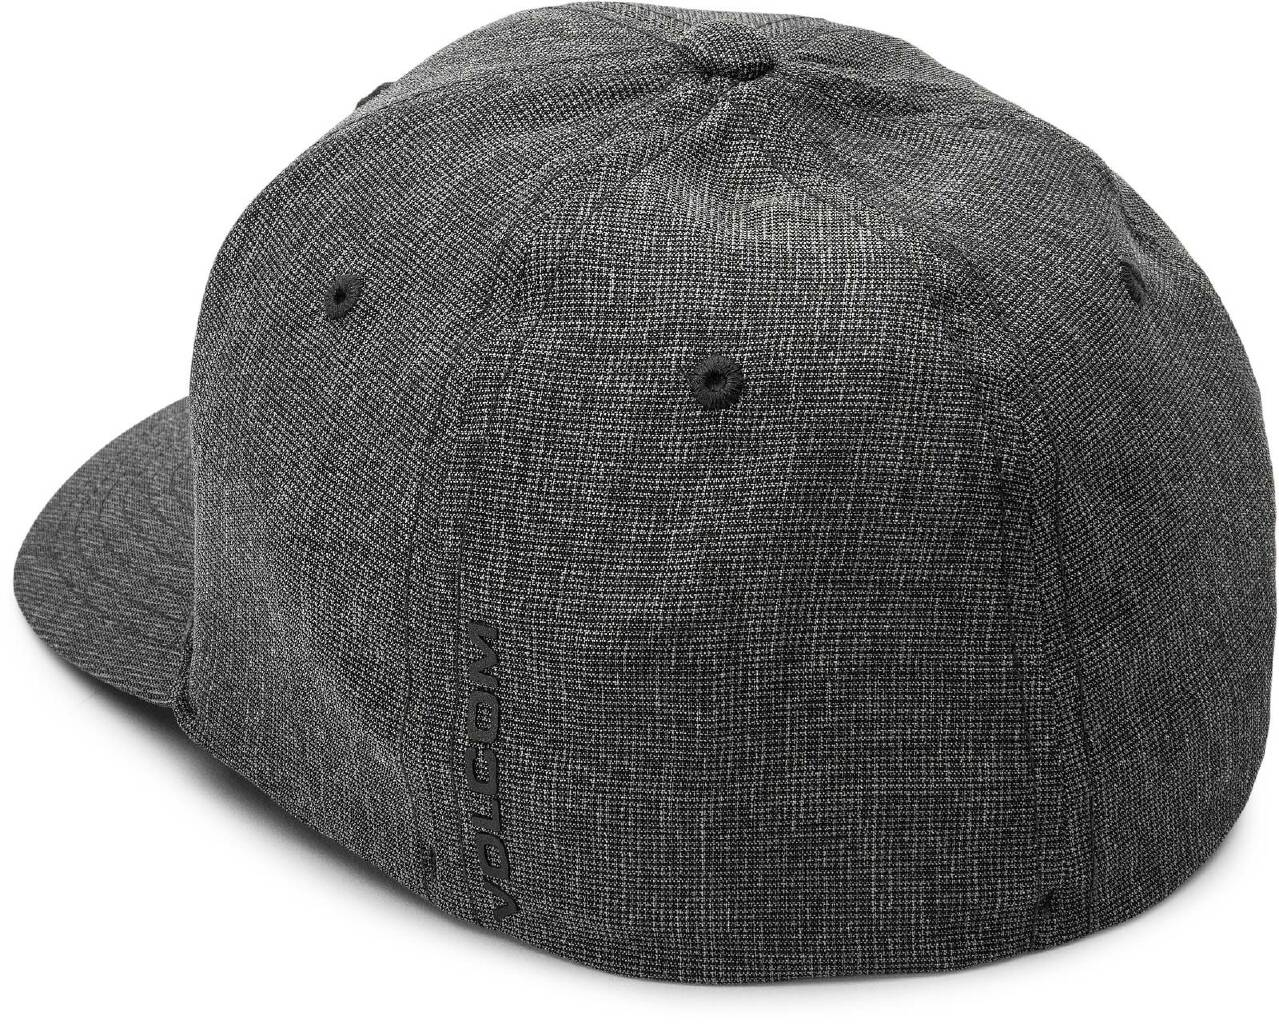 STONE TECH XFIT CAP - DARK CHARCOAL